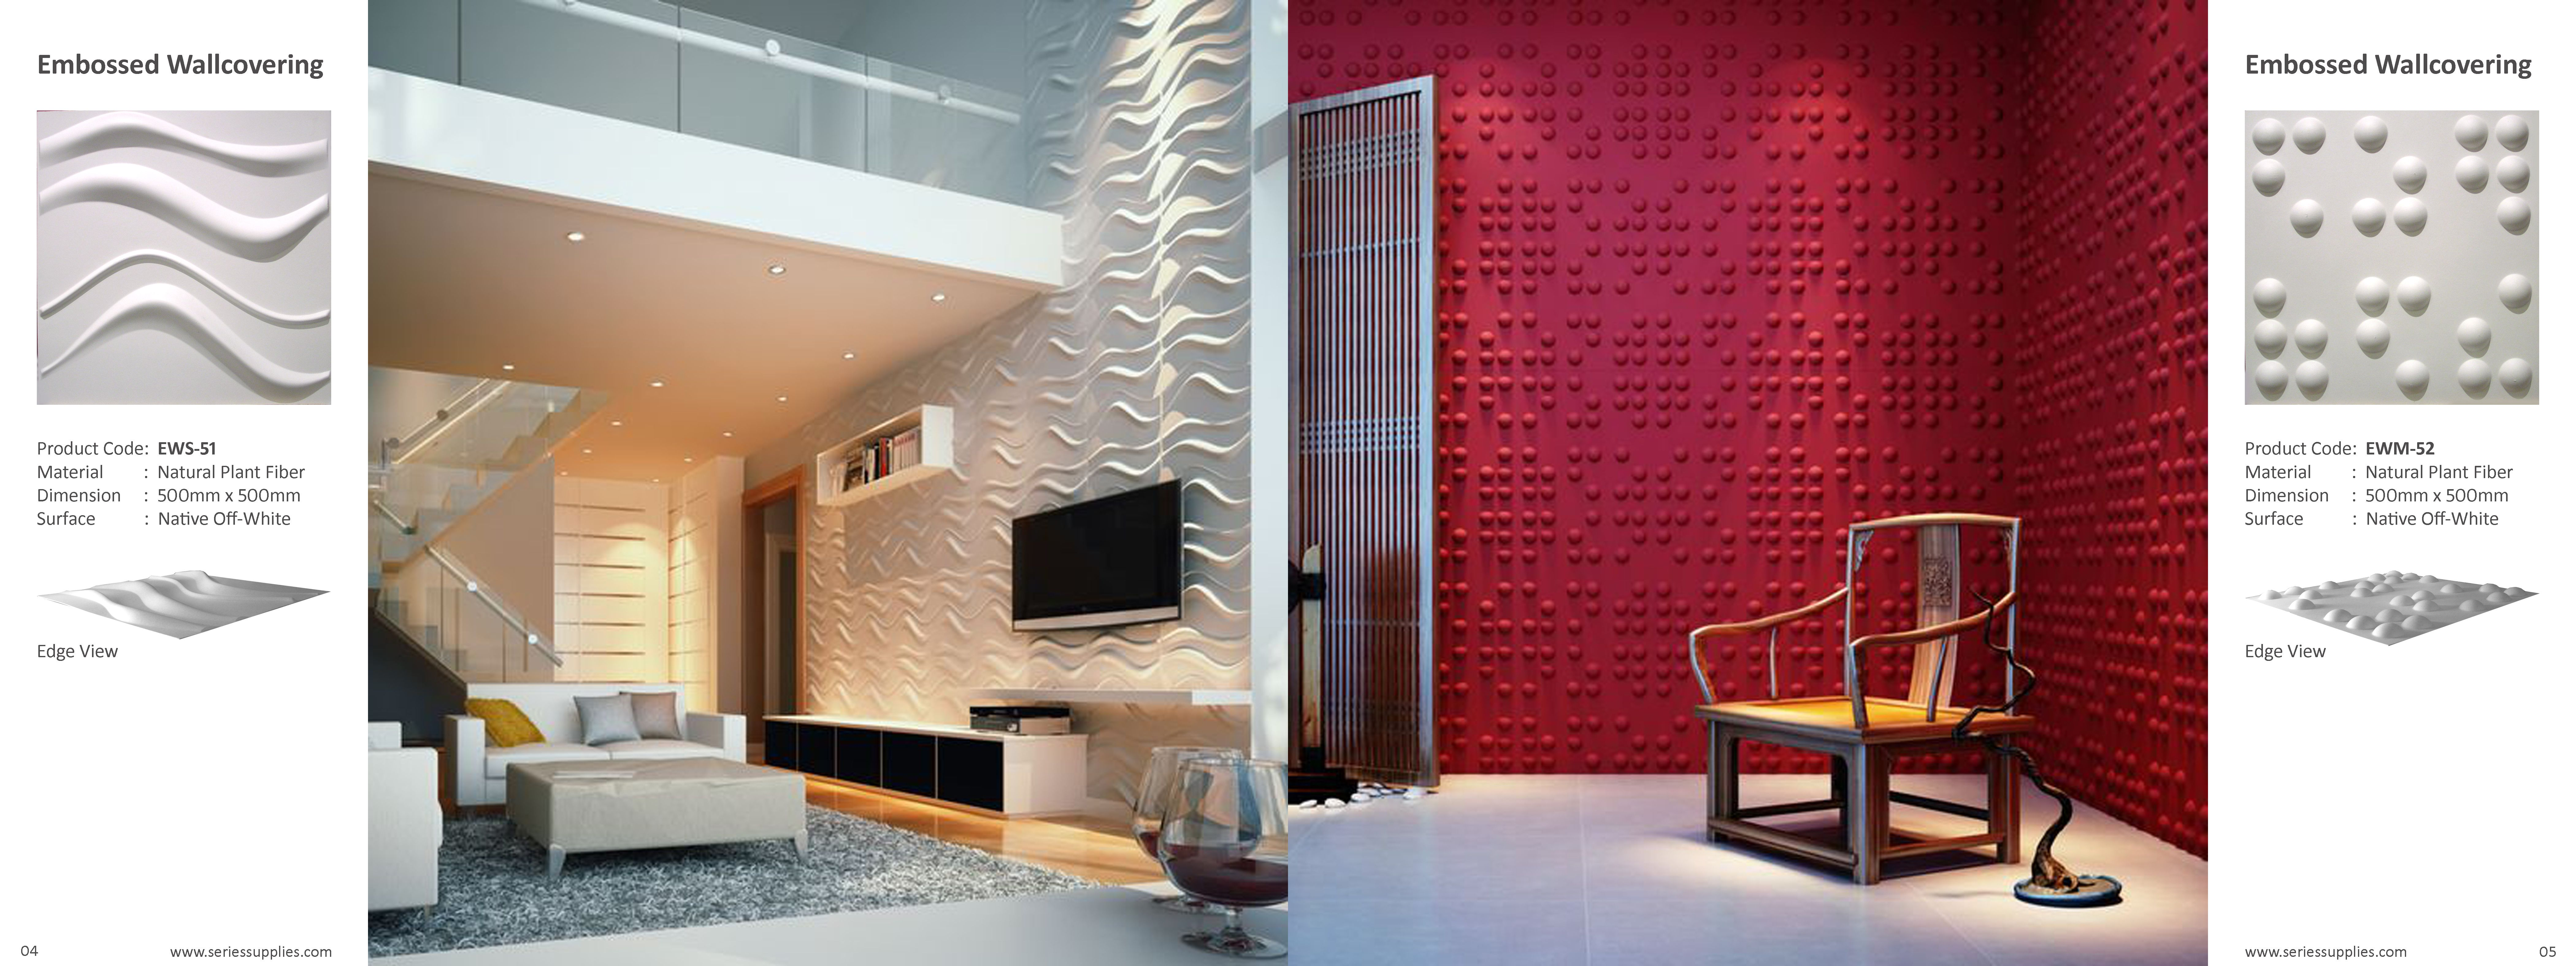 Three Dimensional Interior Wall Panels Made From Bamboo Pulp The Panels Have The Feel Of Solid Fibreboard And Can Be Eas Cool Walls Wall Panels 3d Wall Panels